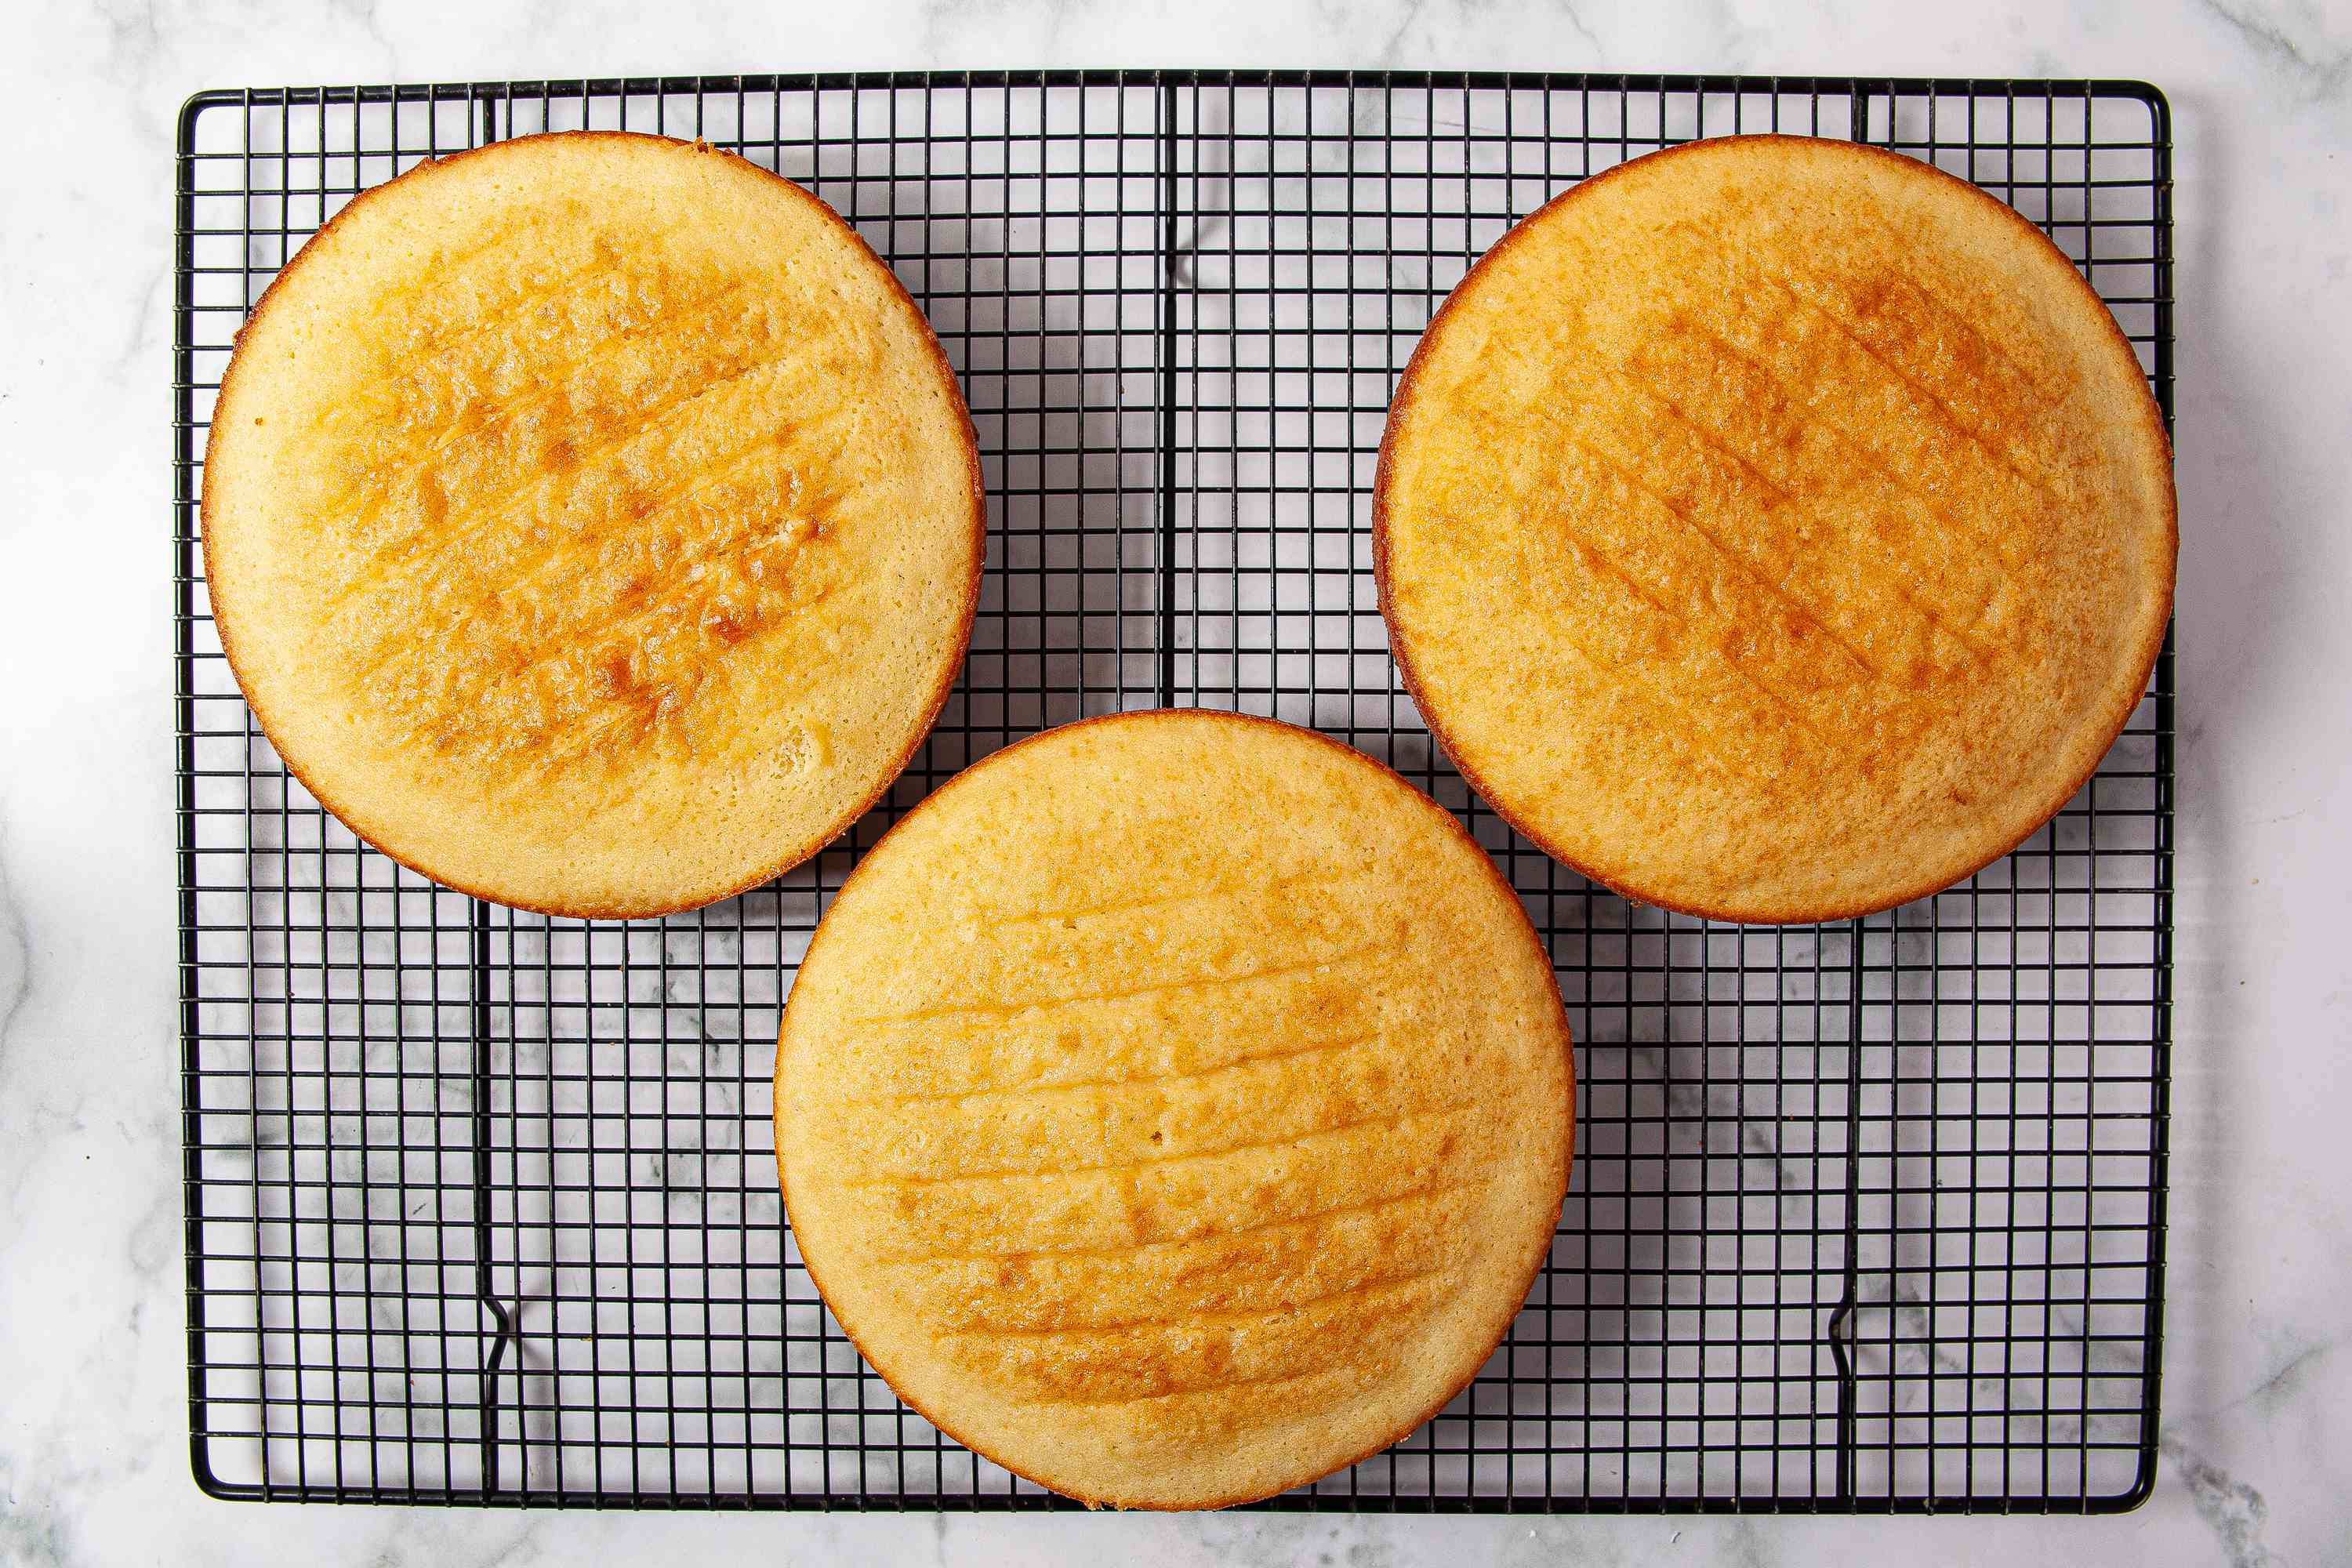 Three round cakes cooling on a wire rack